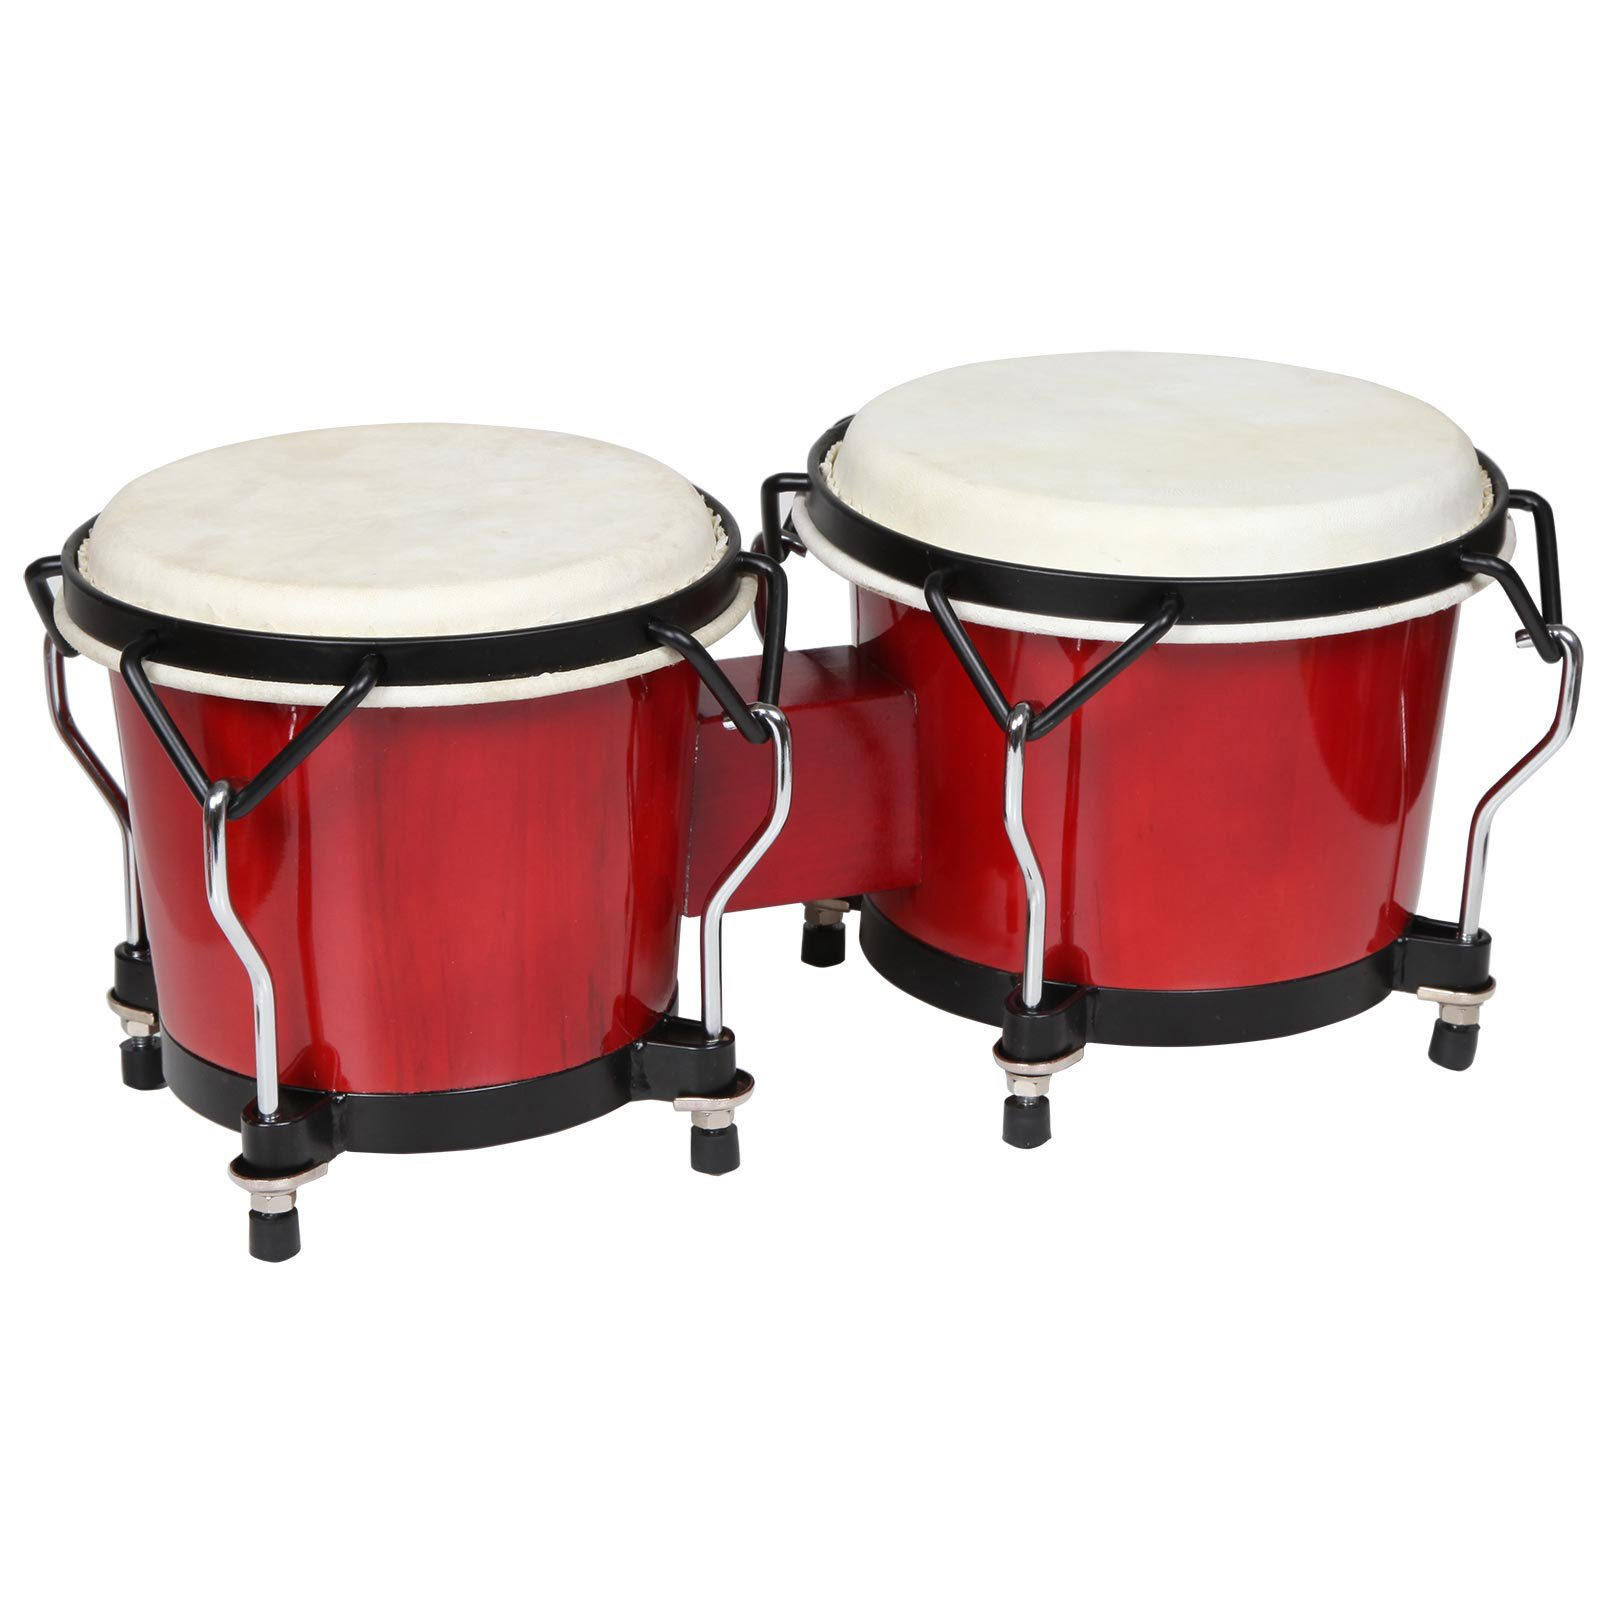 X8 Drums Endeavor Series Wood Bongos